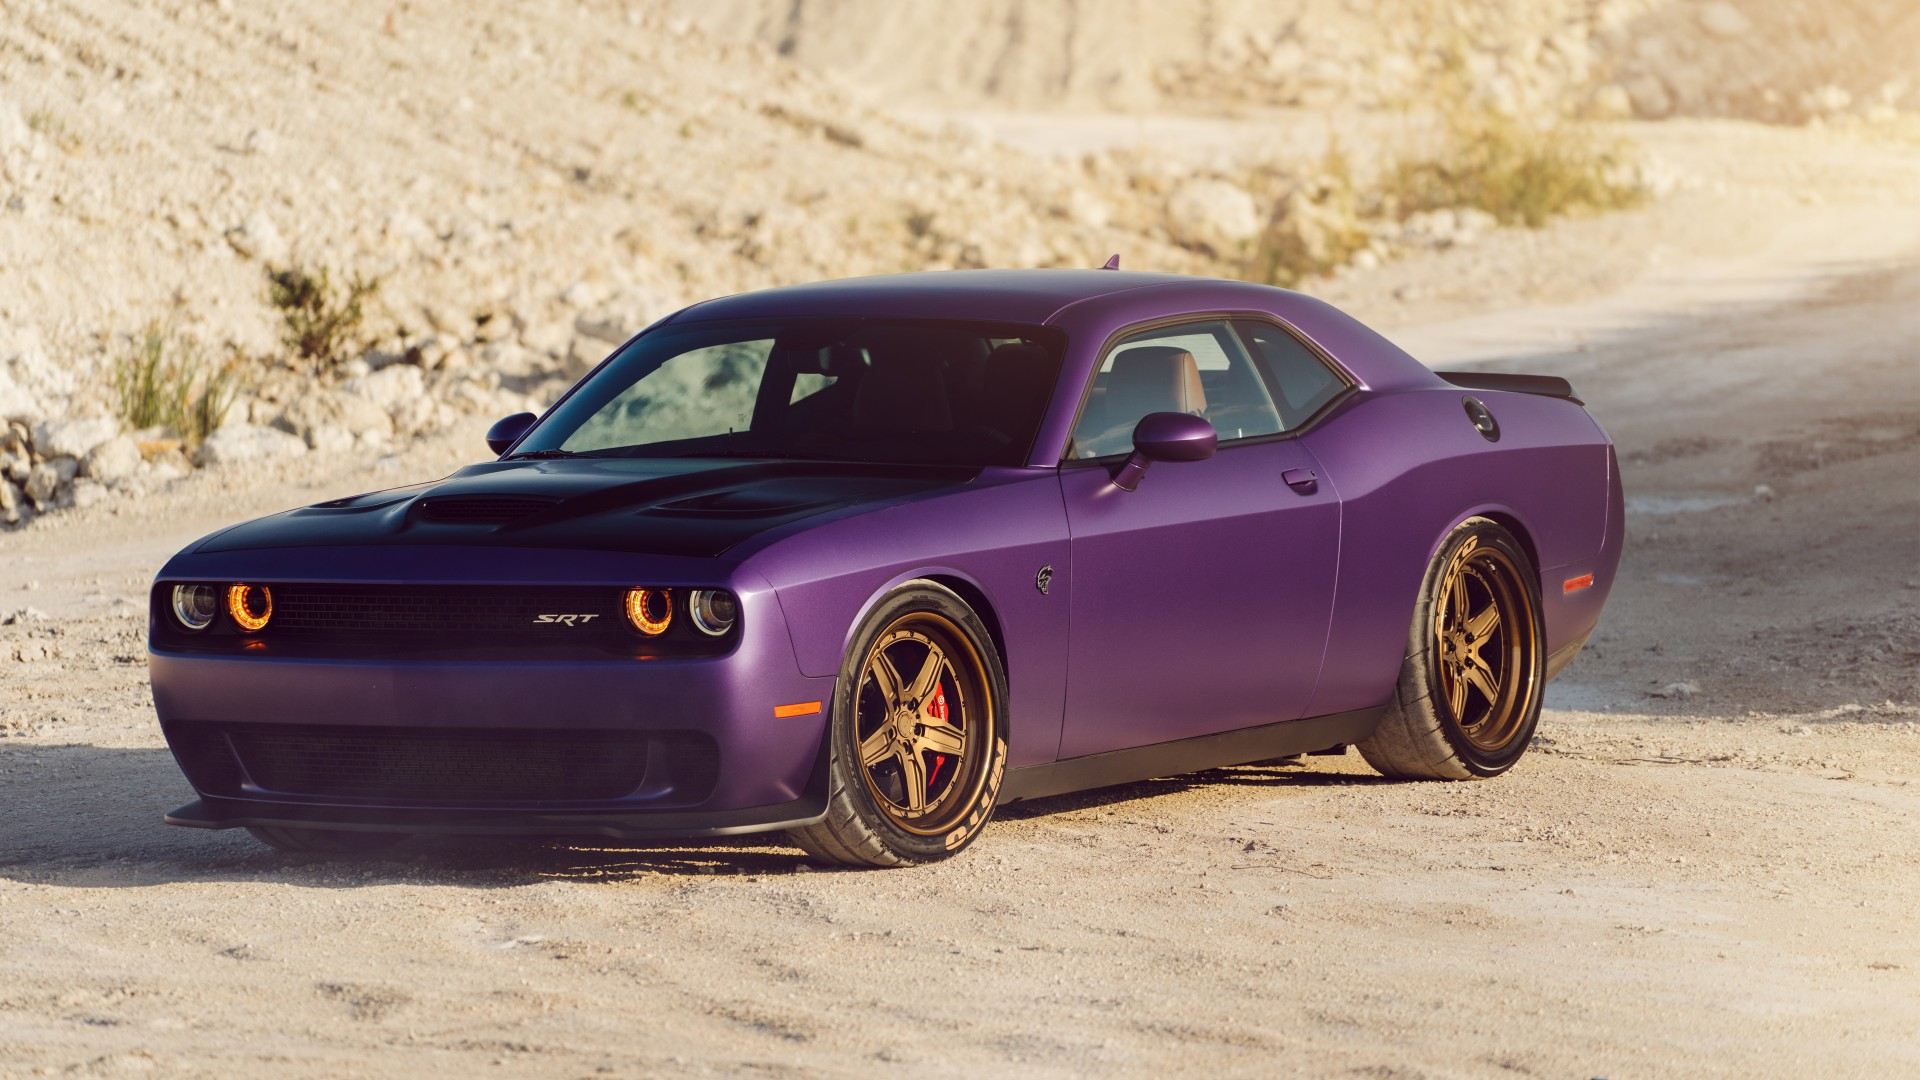 Adv1 dodge plum hellcat 4k wallpaper hd car wallpapers - Wallpaper hd 4k car ...